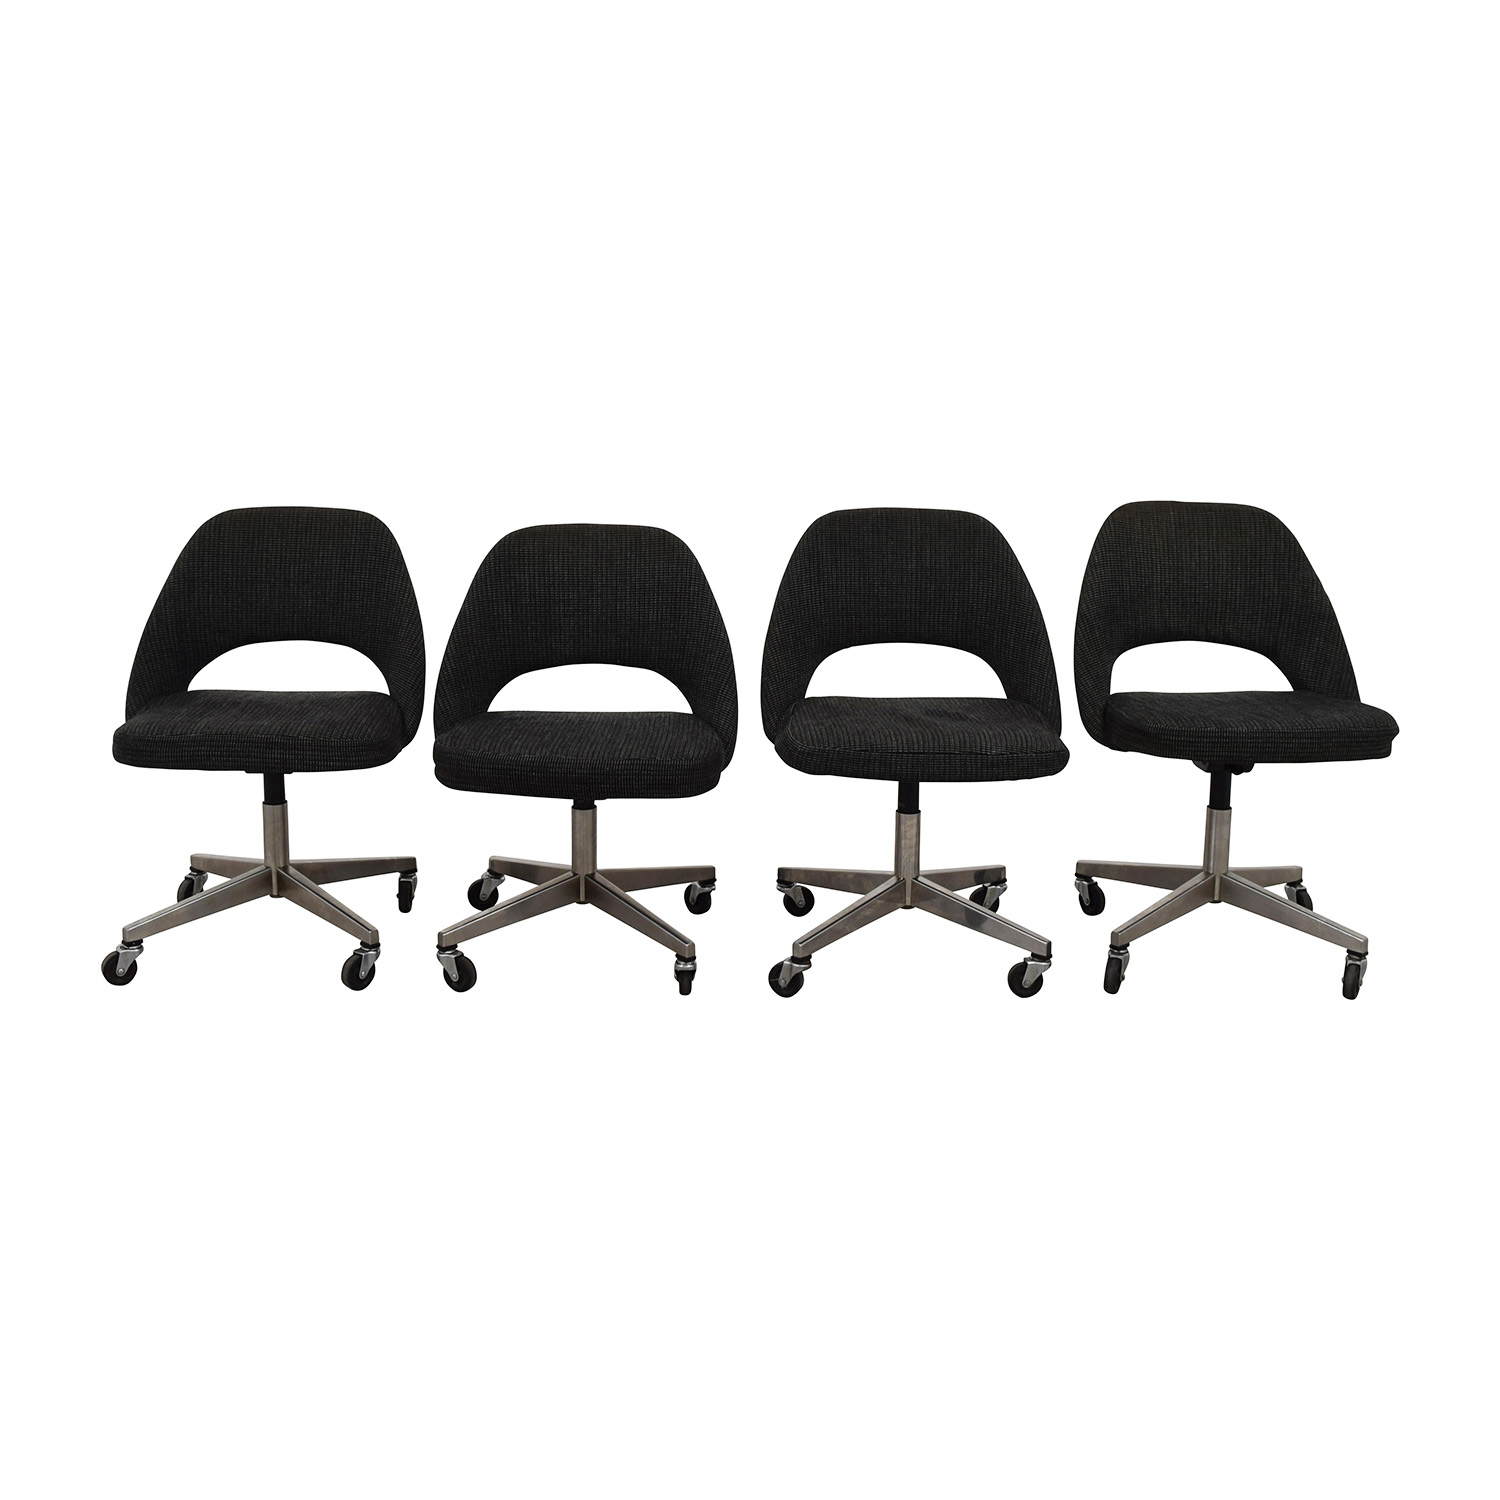 Saarinen Executive Chairs / Home Office Chairs